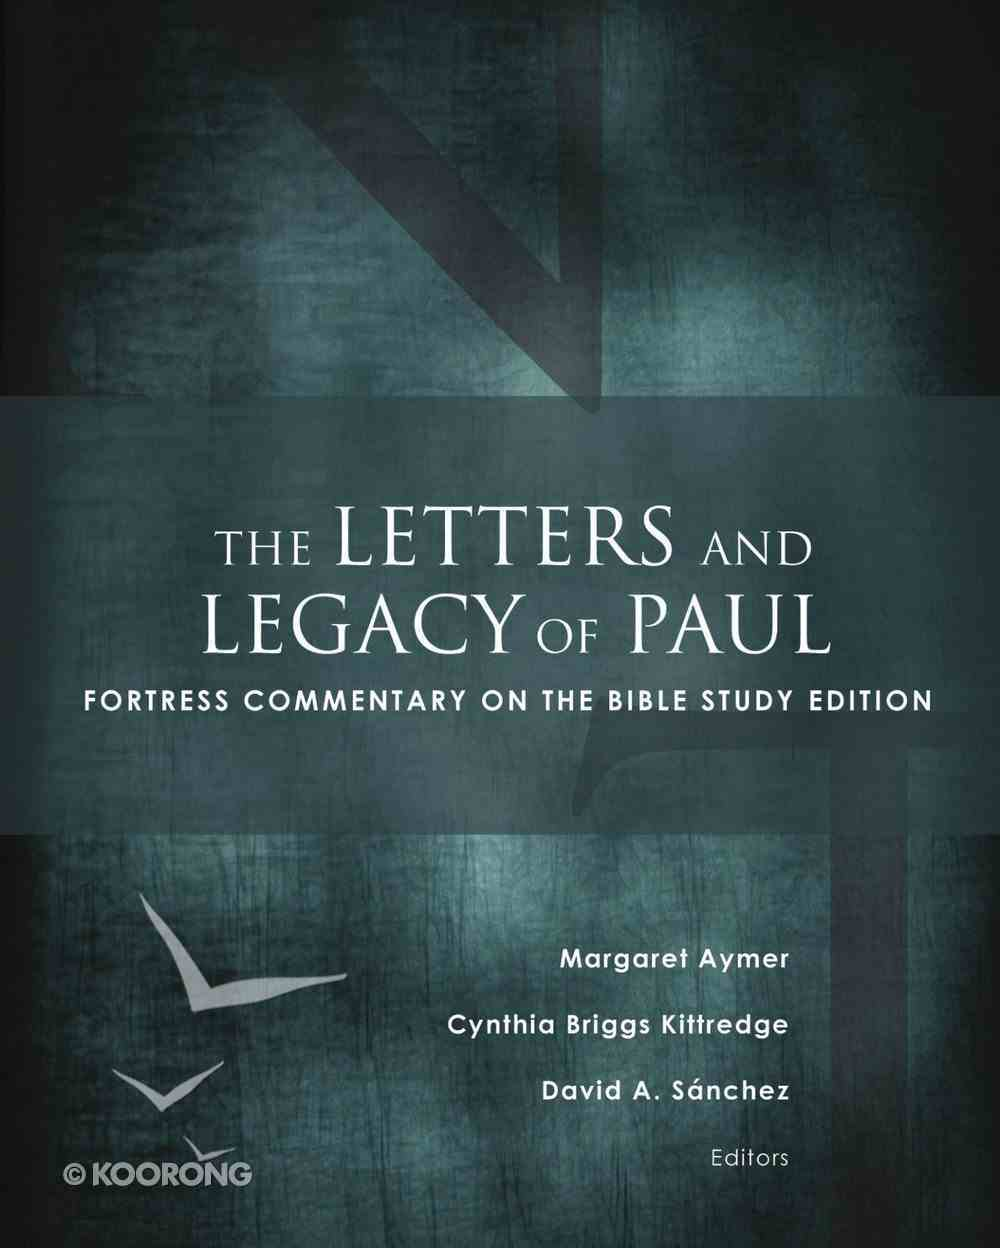 The Letters and Legacy of Paul (Fortress Commentary On The Bible Series) eBook